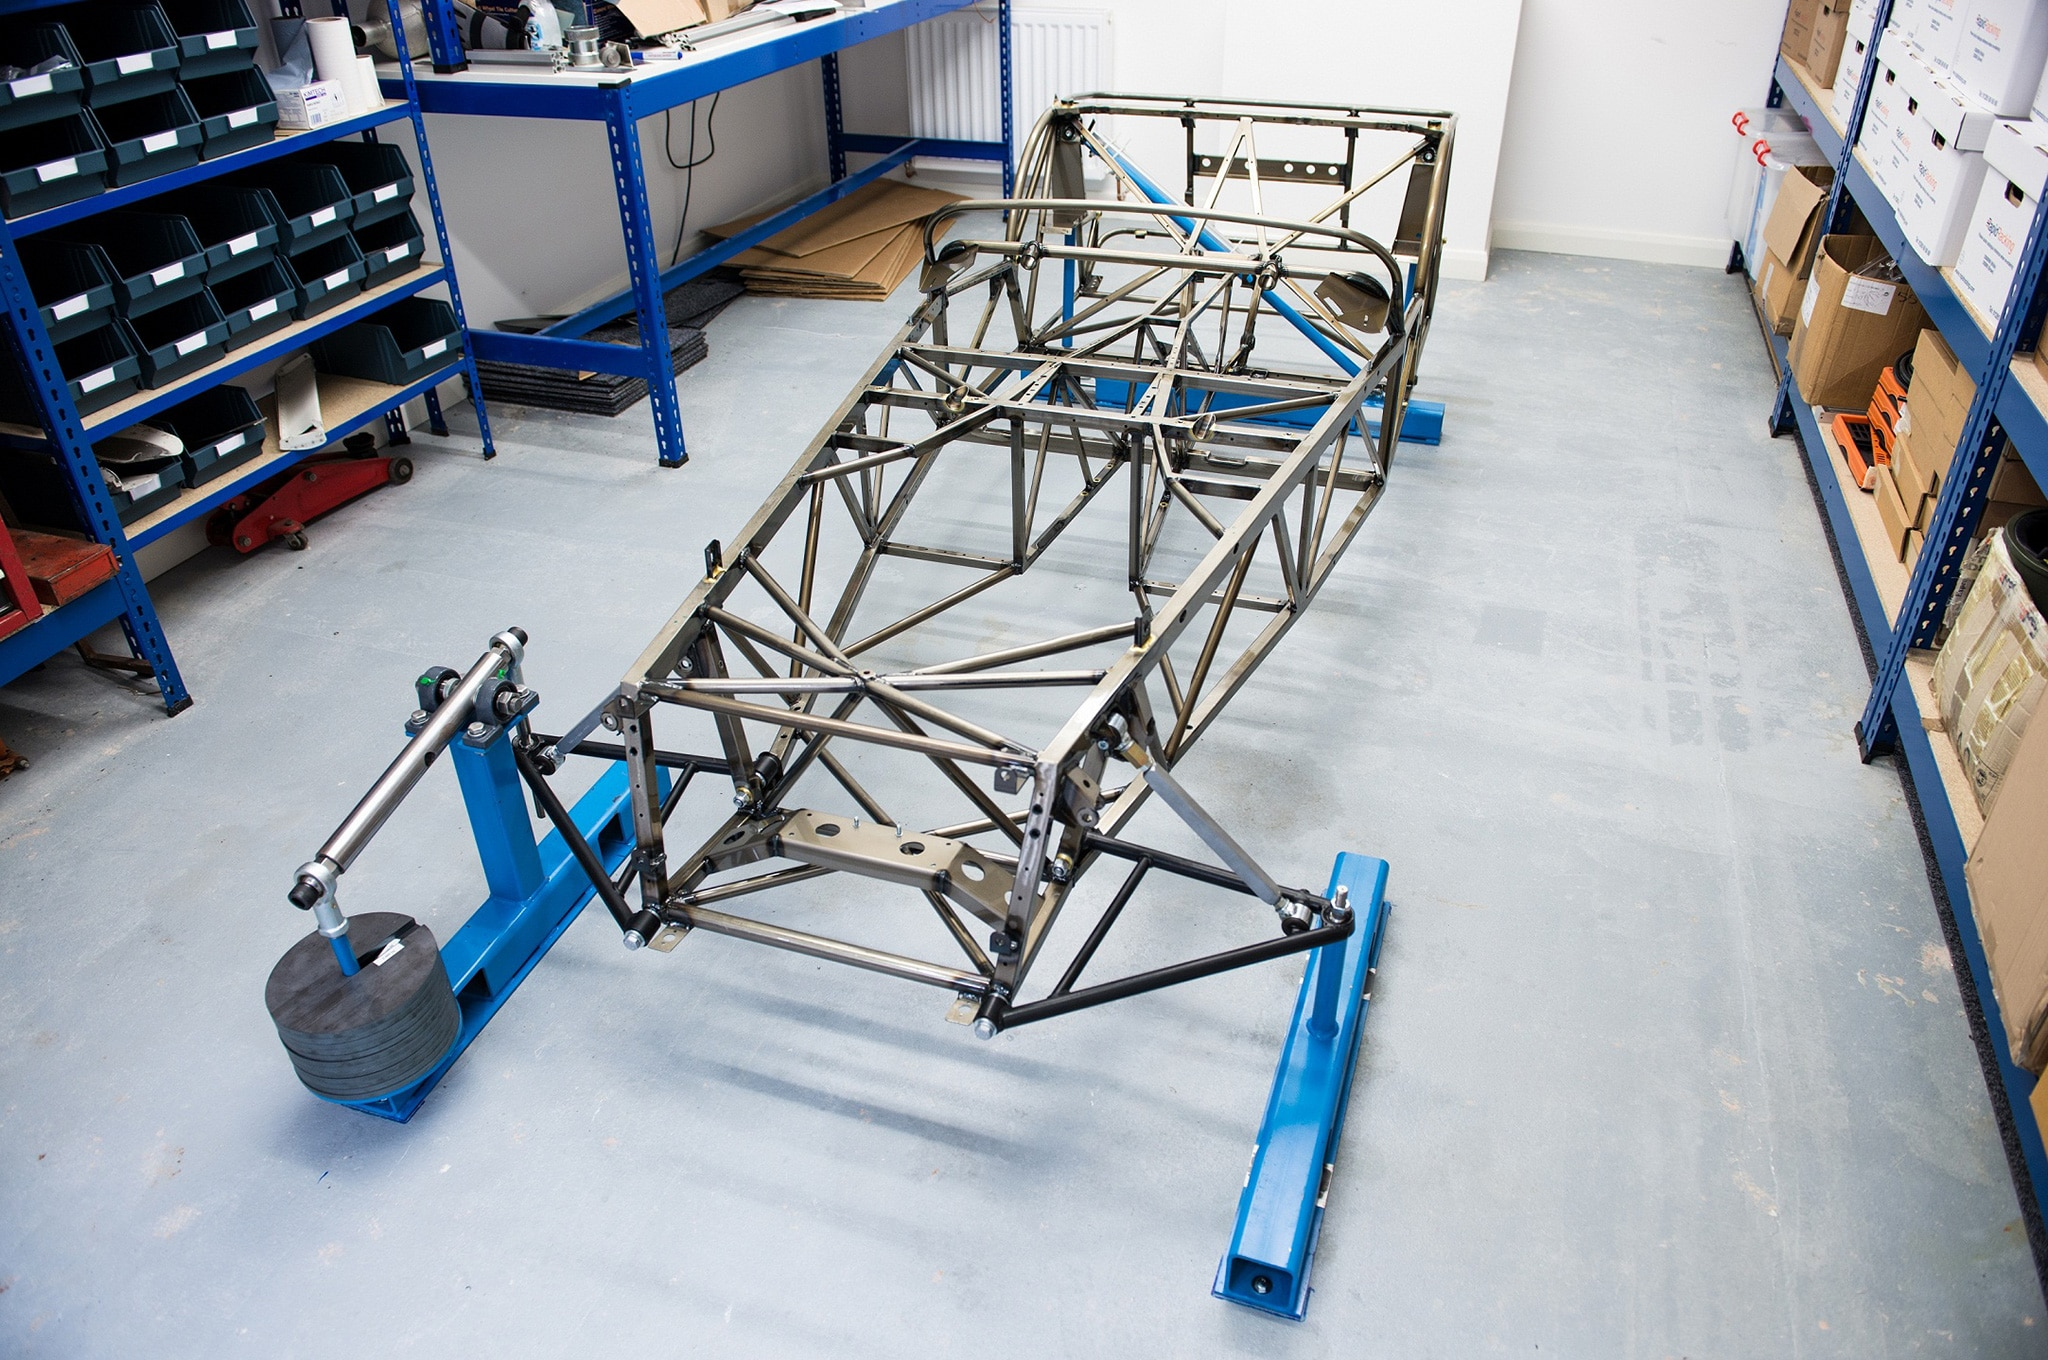 Caterham Cars Demonstrates New Chassis Design To Cut